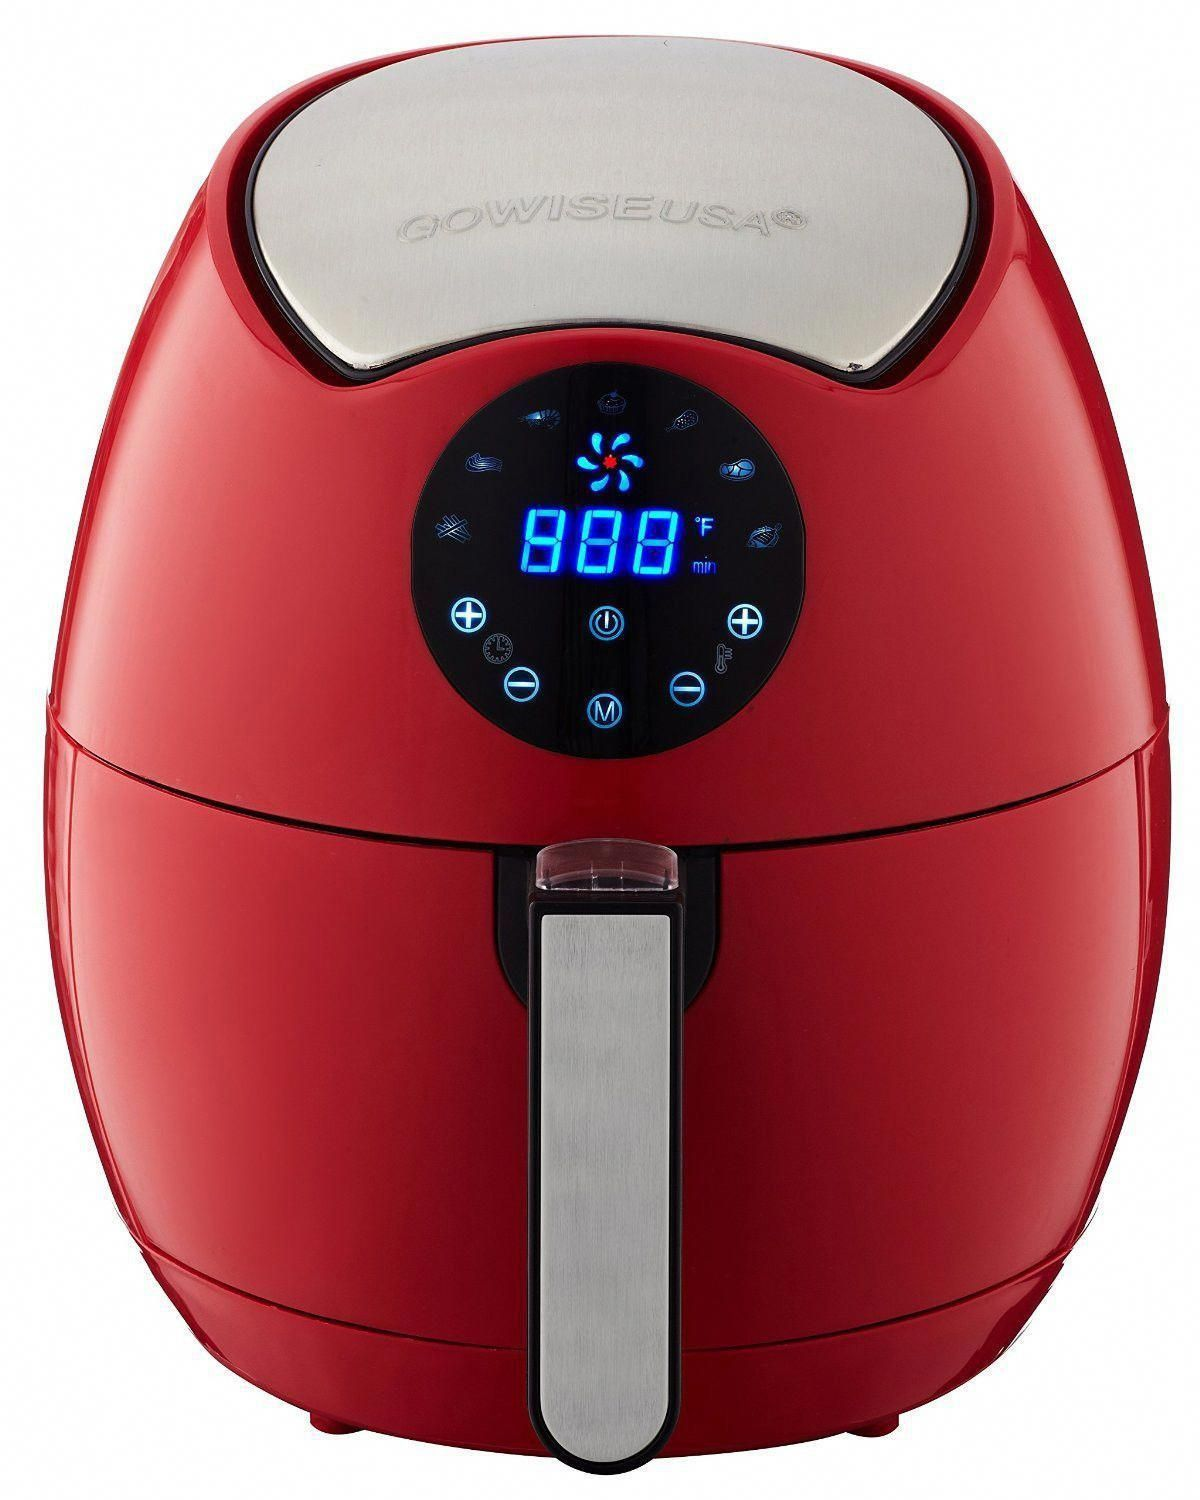 airfryer recipes RecipesforEveryone in 2020 Electric